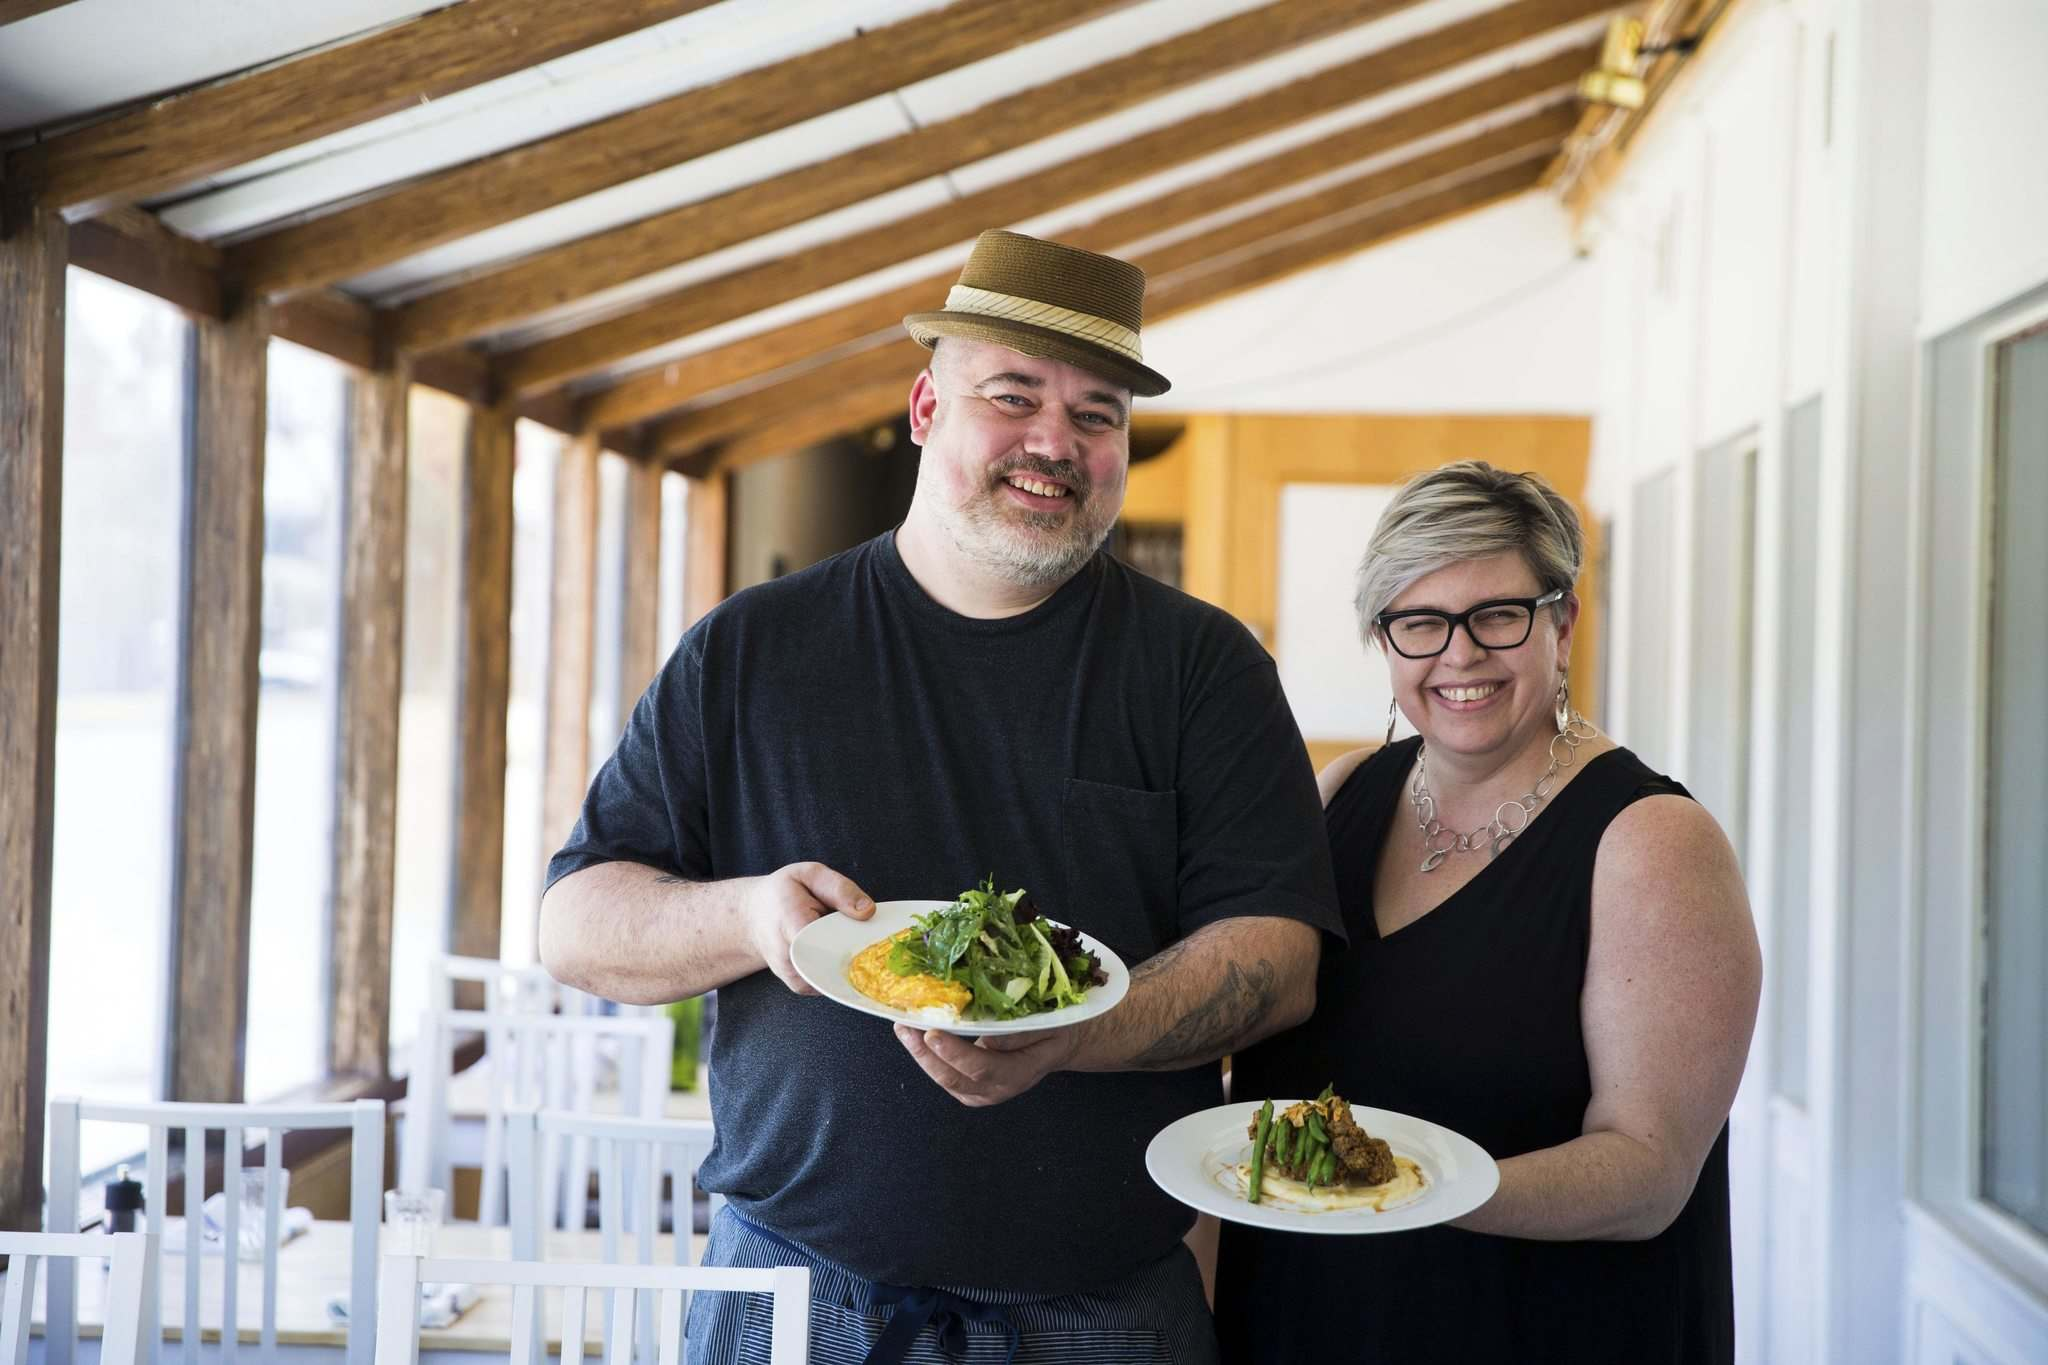 Owner/chef Alexander Svenne (left) and front-of-house boss Danielle Carignane-Svenne bring a family-run brunch experience at Little Goat Food & Drink. (Mikaela MacKenzie / Free Press files)